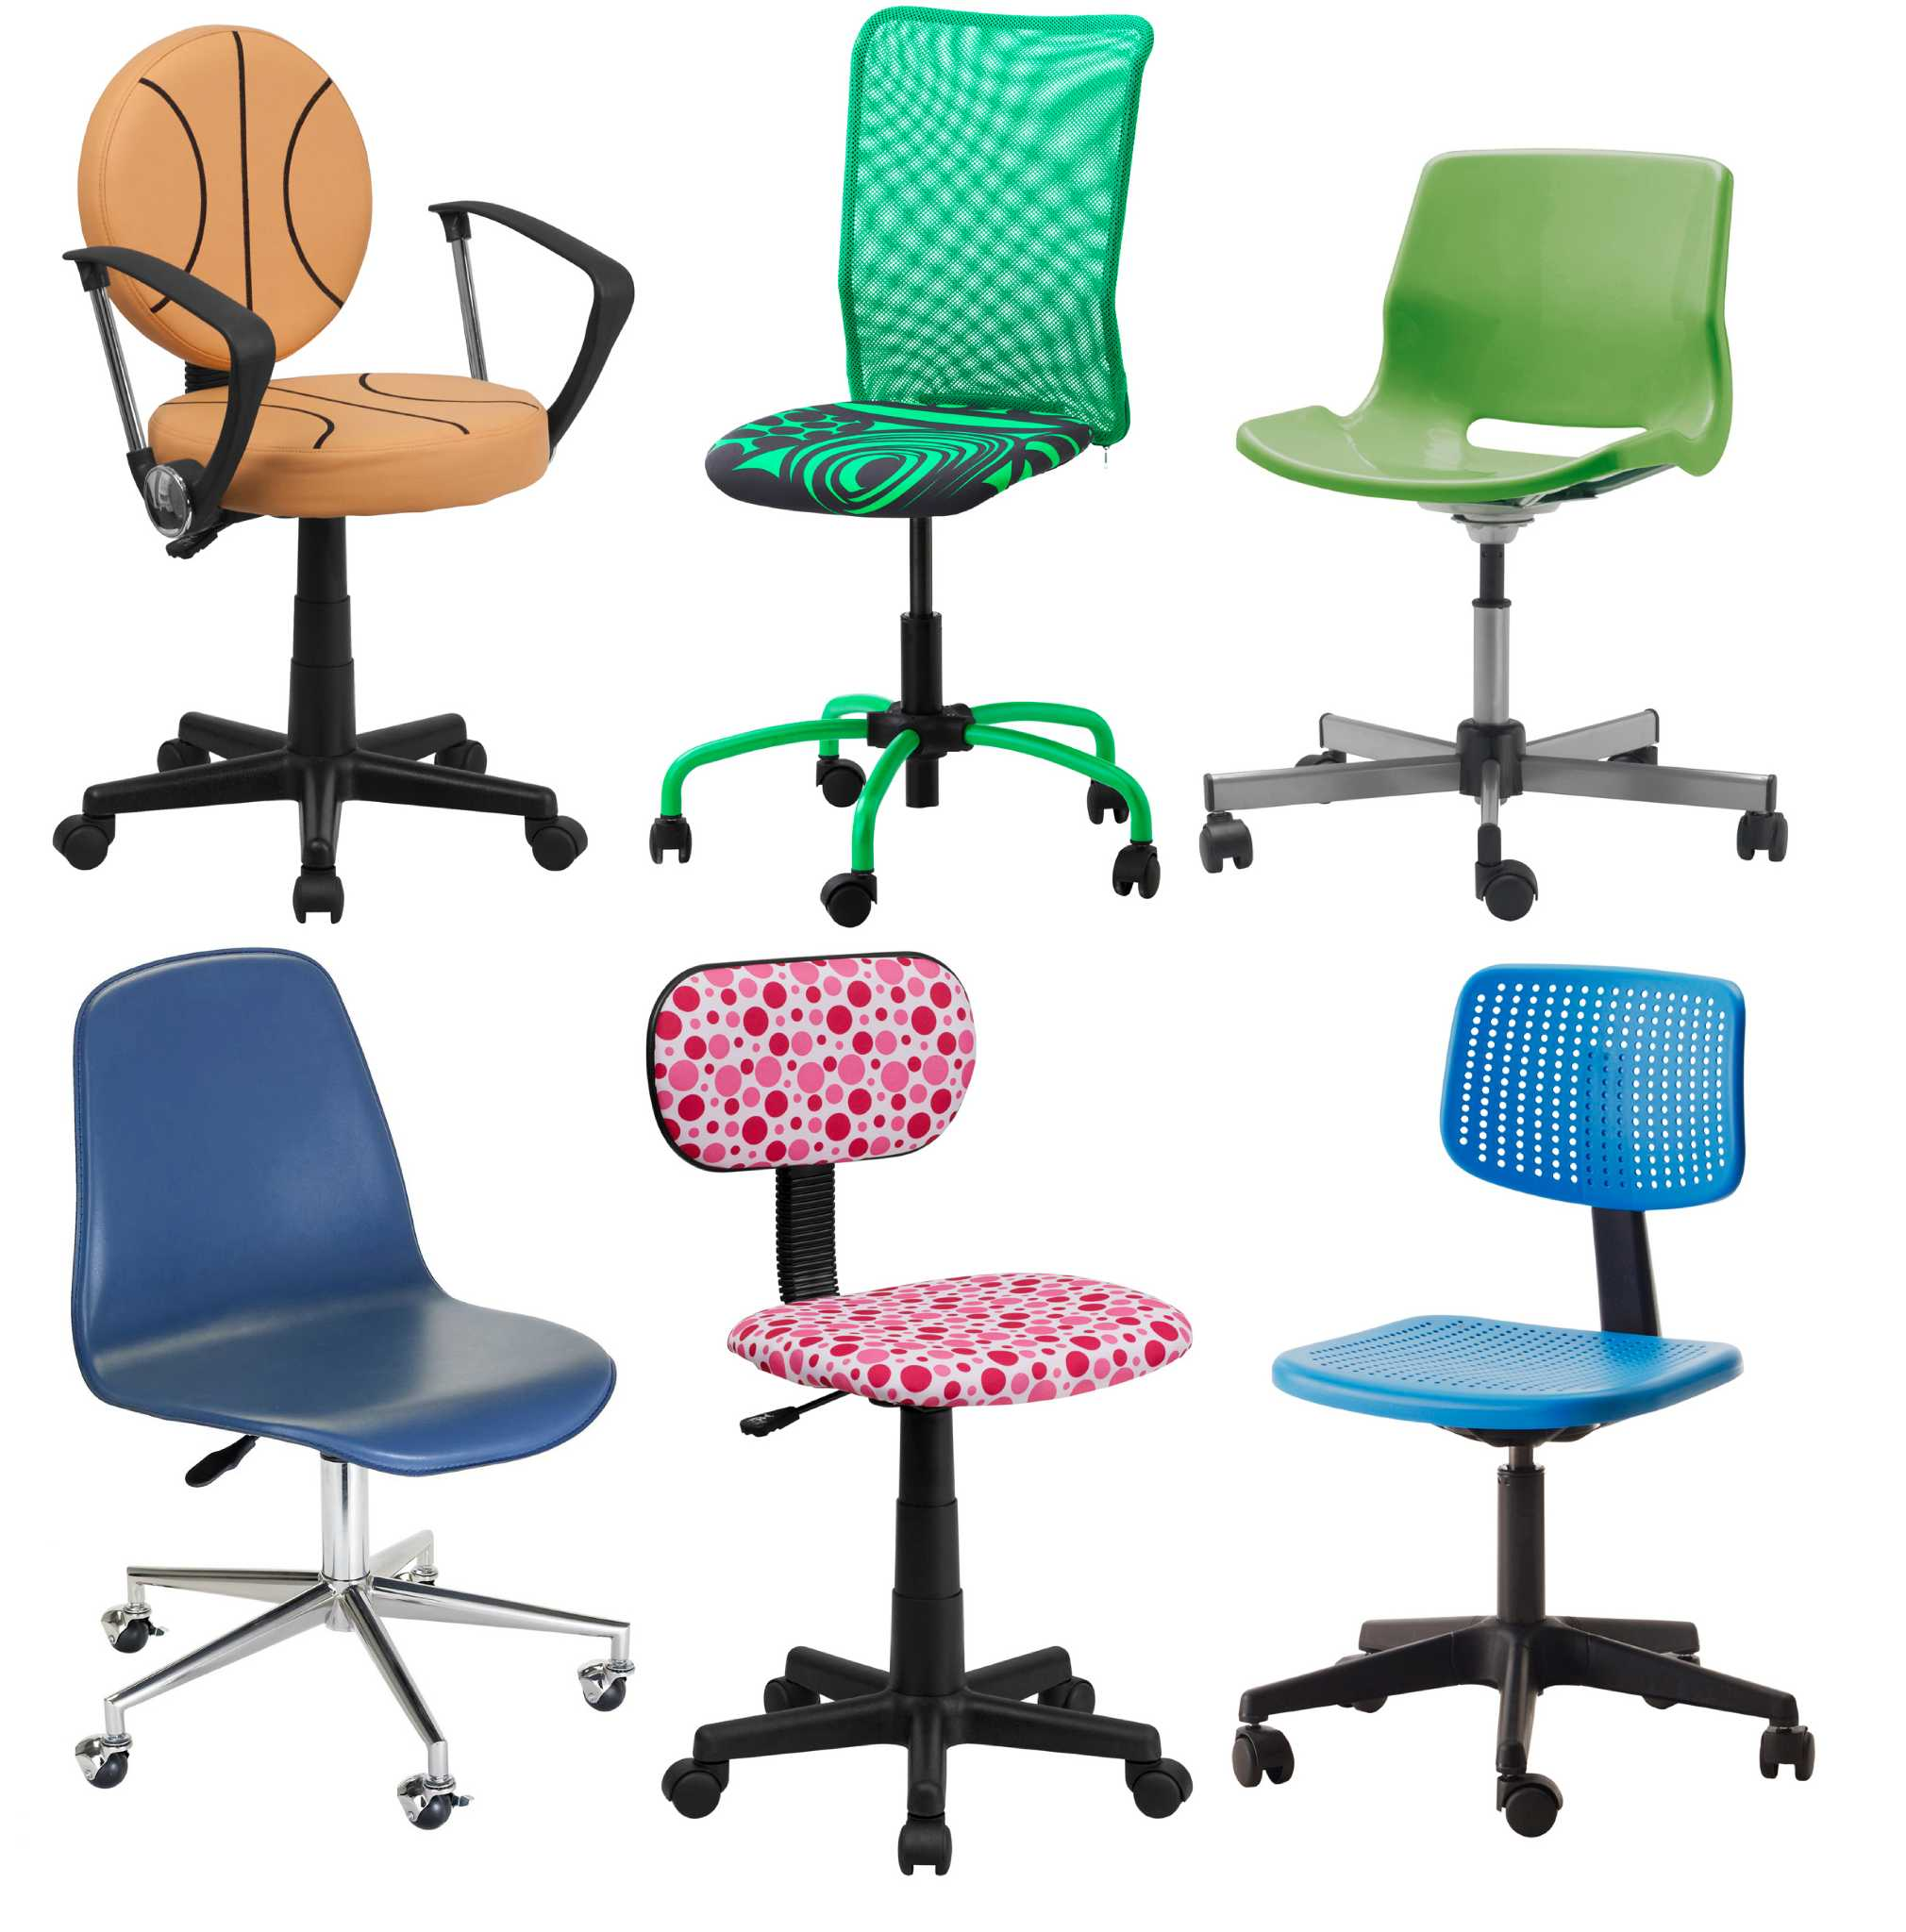 smaller scale desk chairs best for children houston